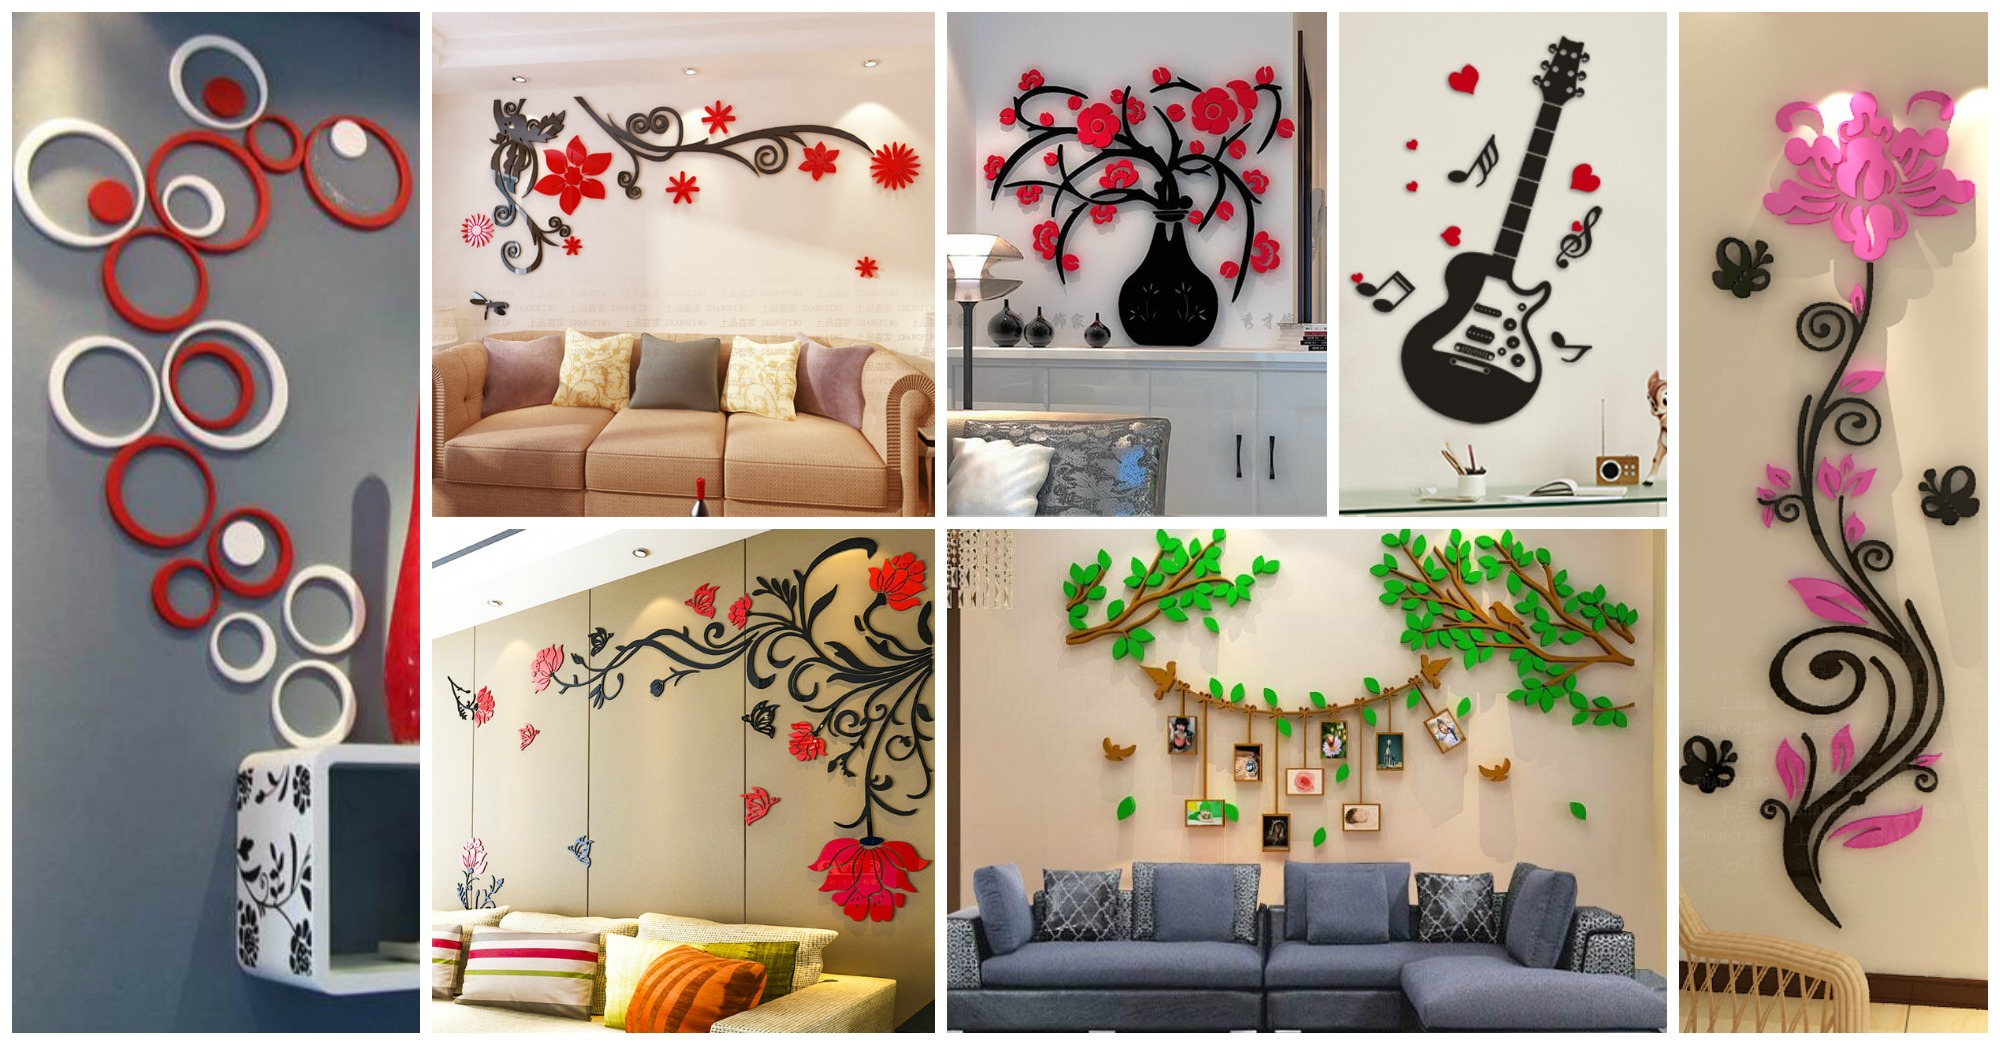 20 Ideas To Add Dimension And Color Your Home With 3D Wall Stickers